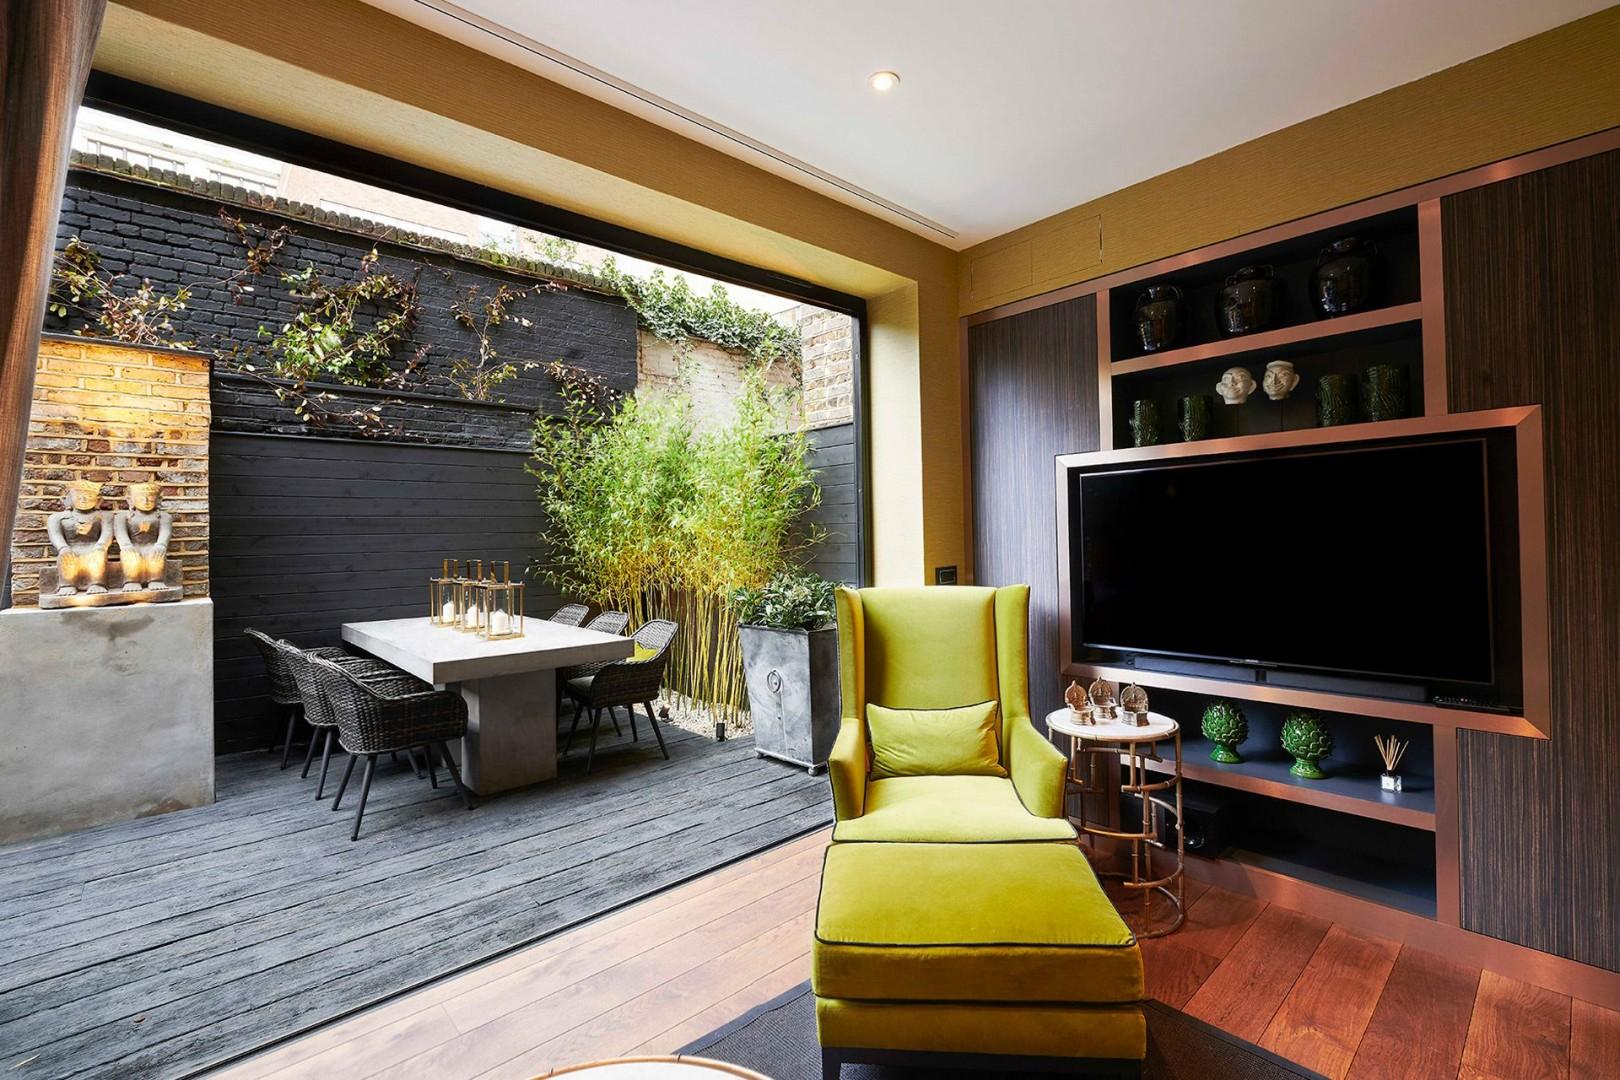 Sumptuous second living room opens onto a private patio